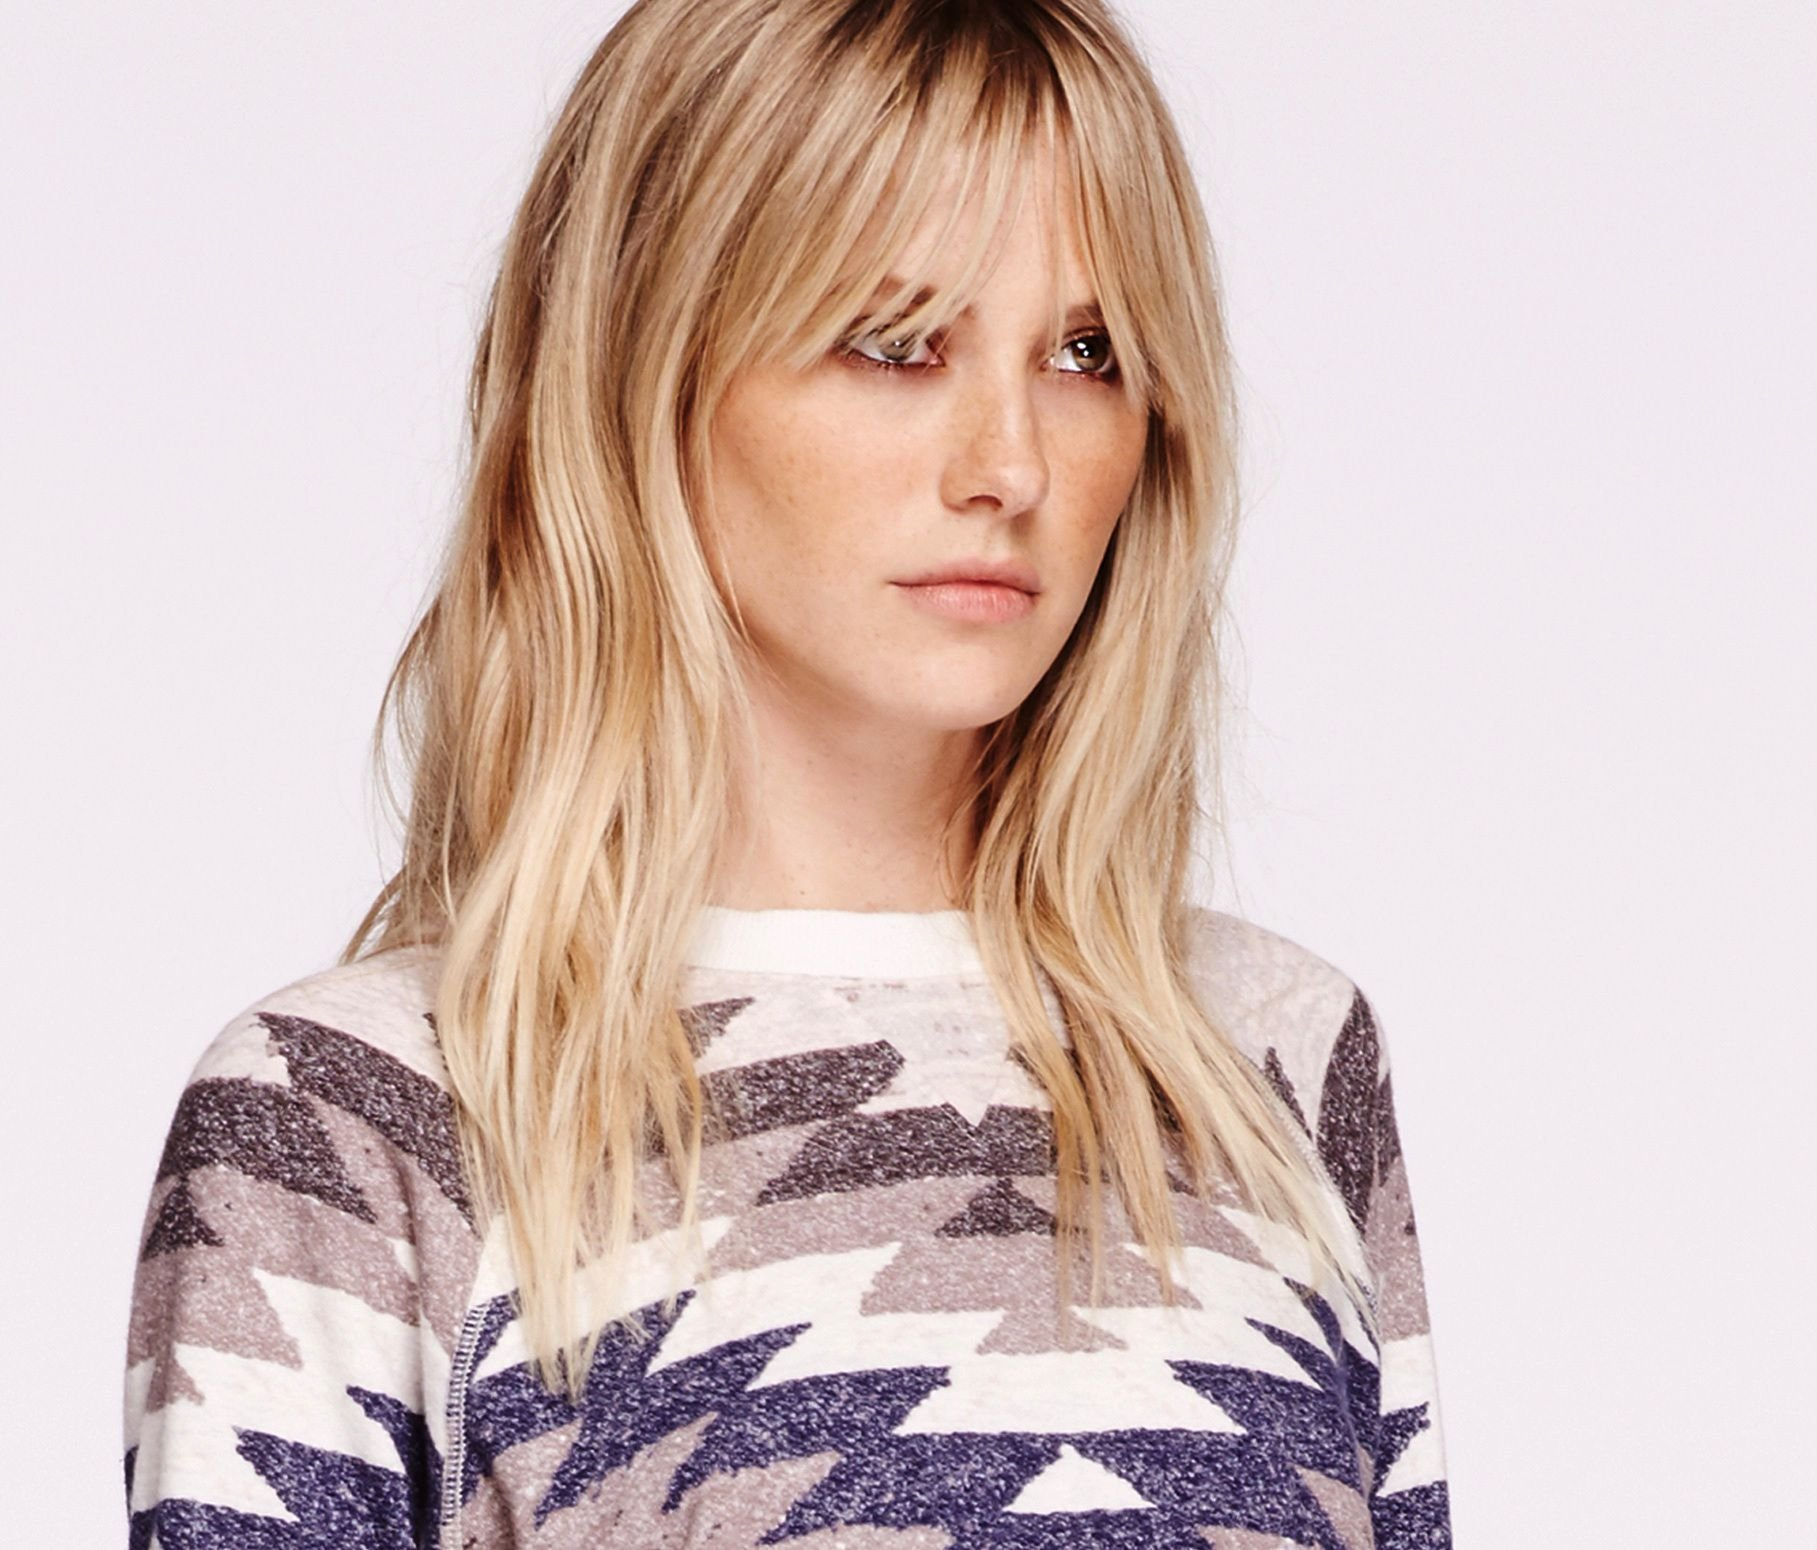 New 16 Great Hairstyles With Bangs Ideas With Pictures Original 1024 x 768